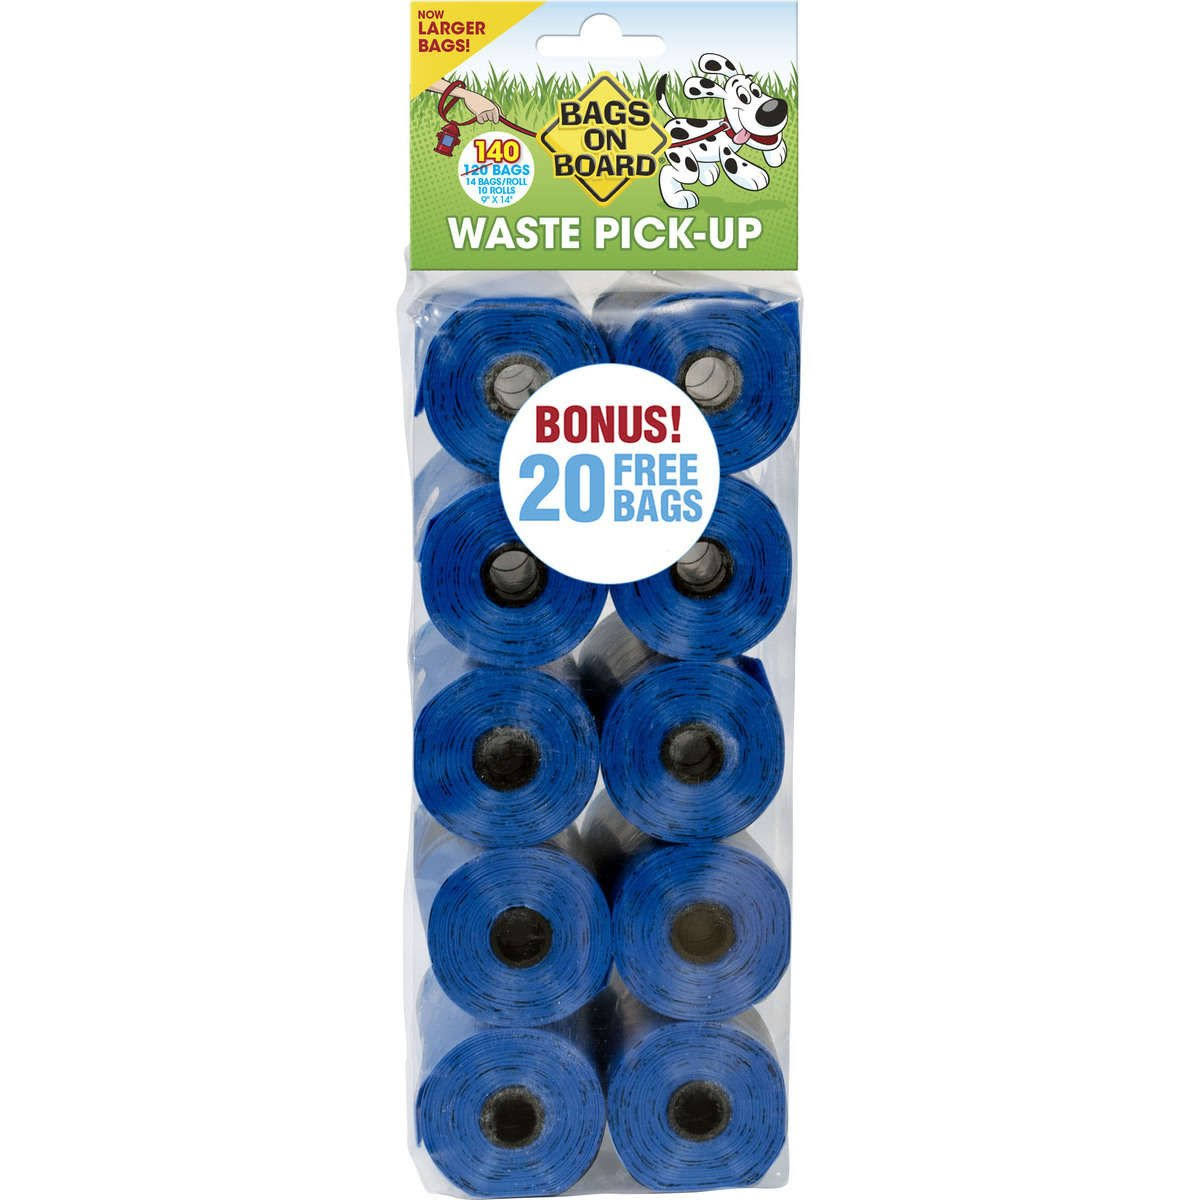 Bags on Board Bag Refill Pack - Blue, 140 Count